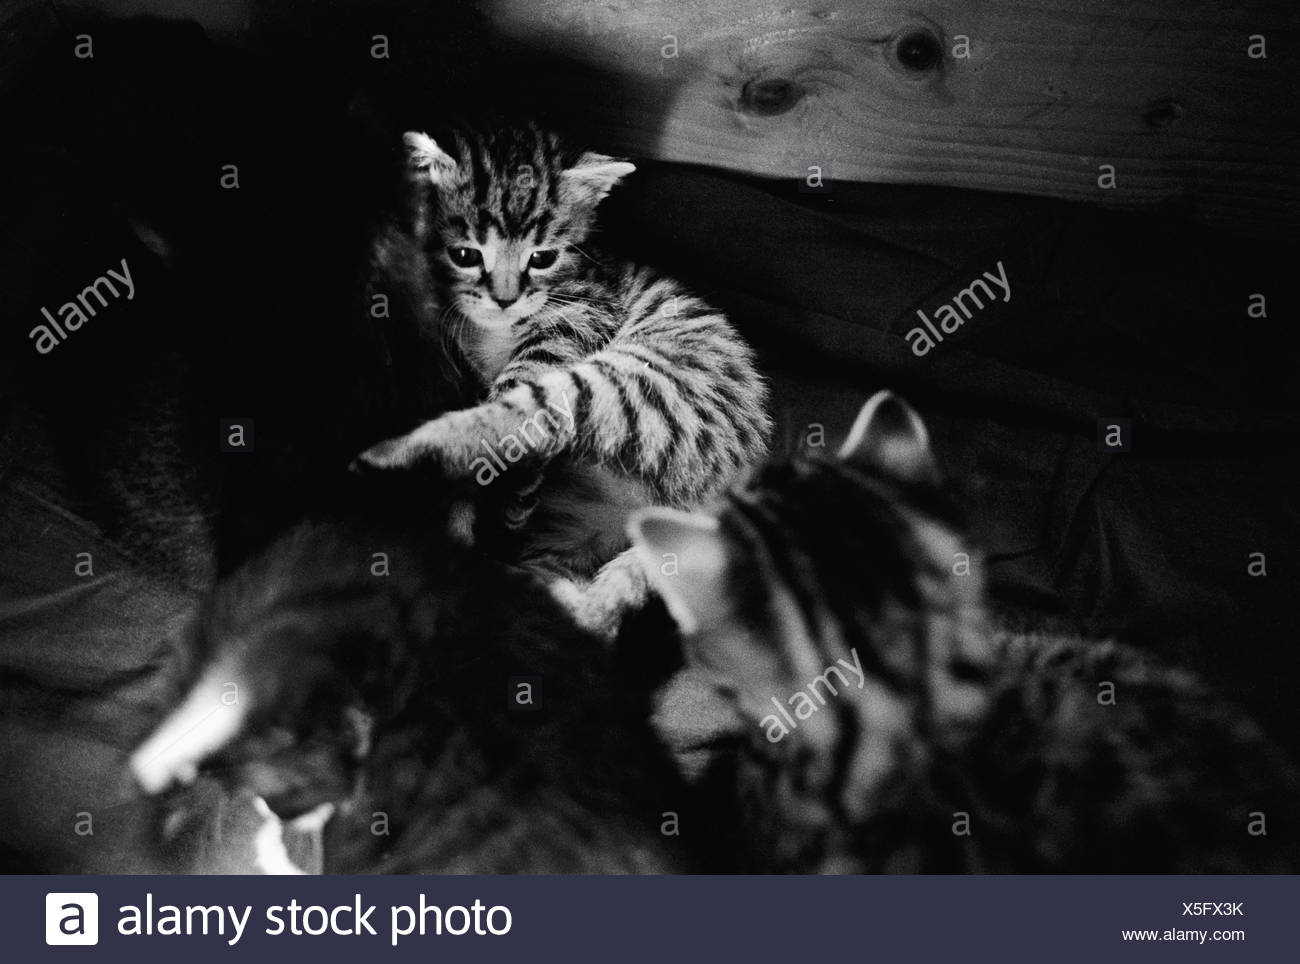 Two kittens looking at each other - Stock Image